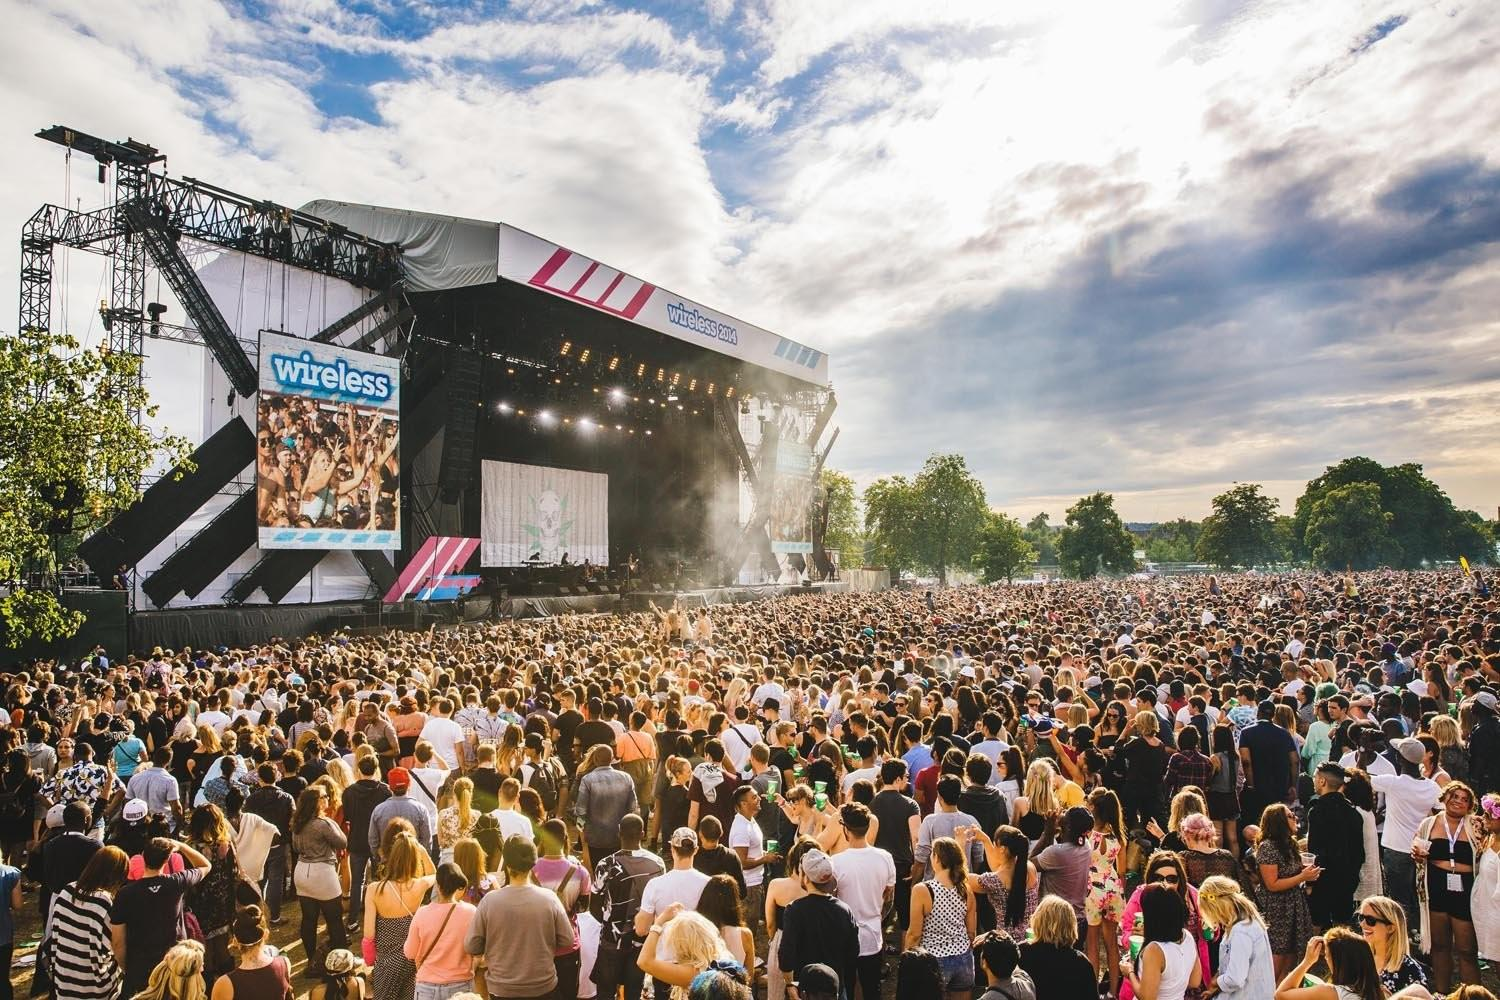 Wireless Festival 2015 Tickets Sold Just Flash